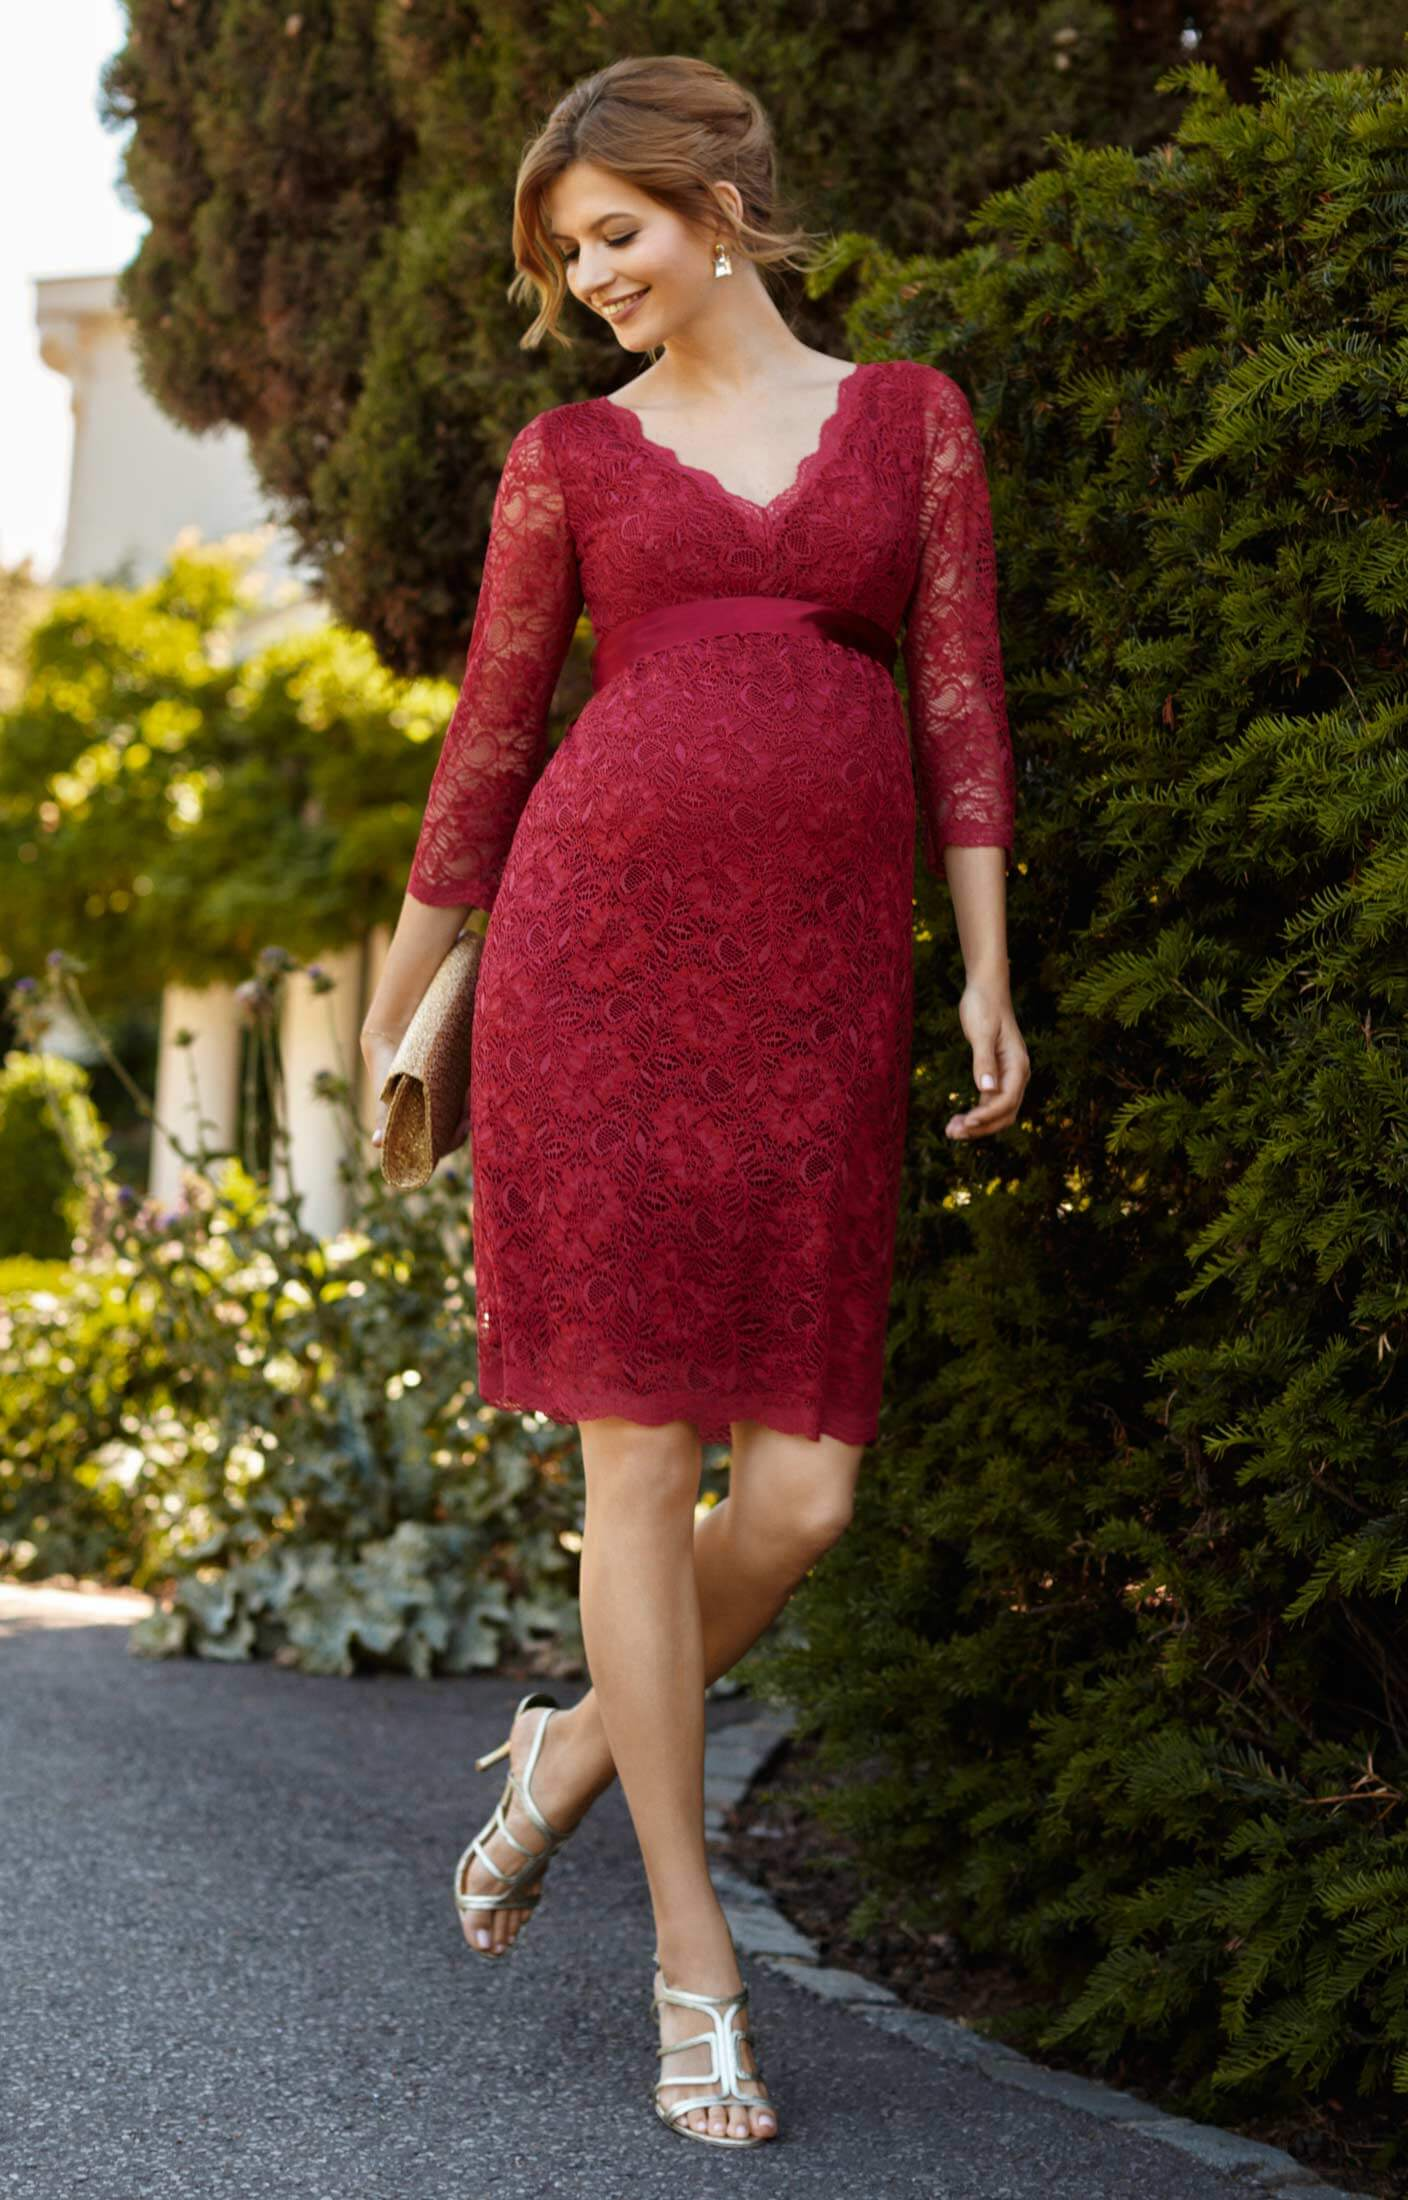 Chloe lace maternity dress scarlet maternity wedding dresses chloe lace maternity dress scarlet by tiffany rose ombrellifo Images